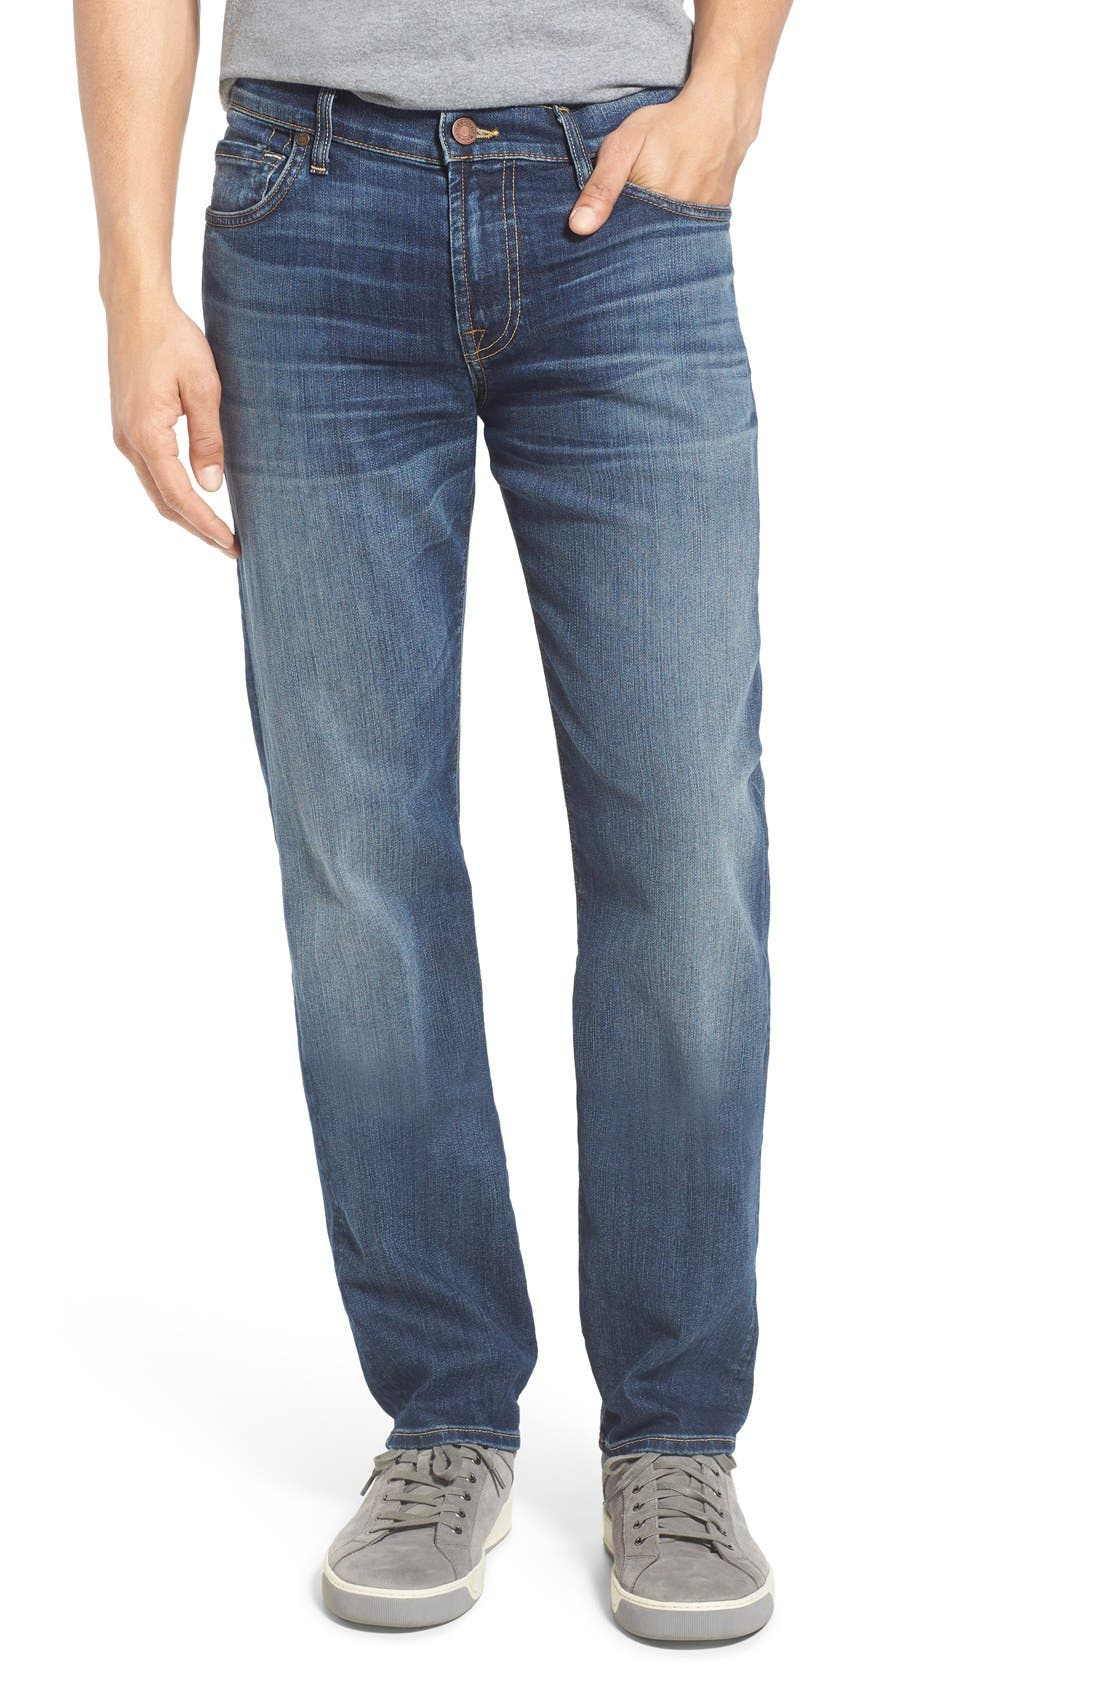 Main Image - 7 For All Mankind® Slimmy Airweft Slim Fit Jeans (Riptide)